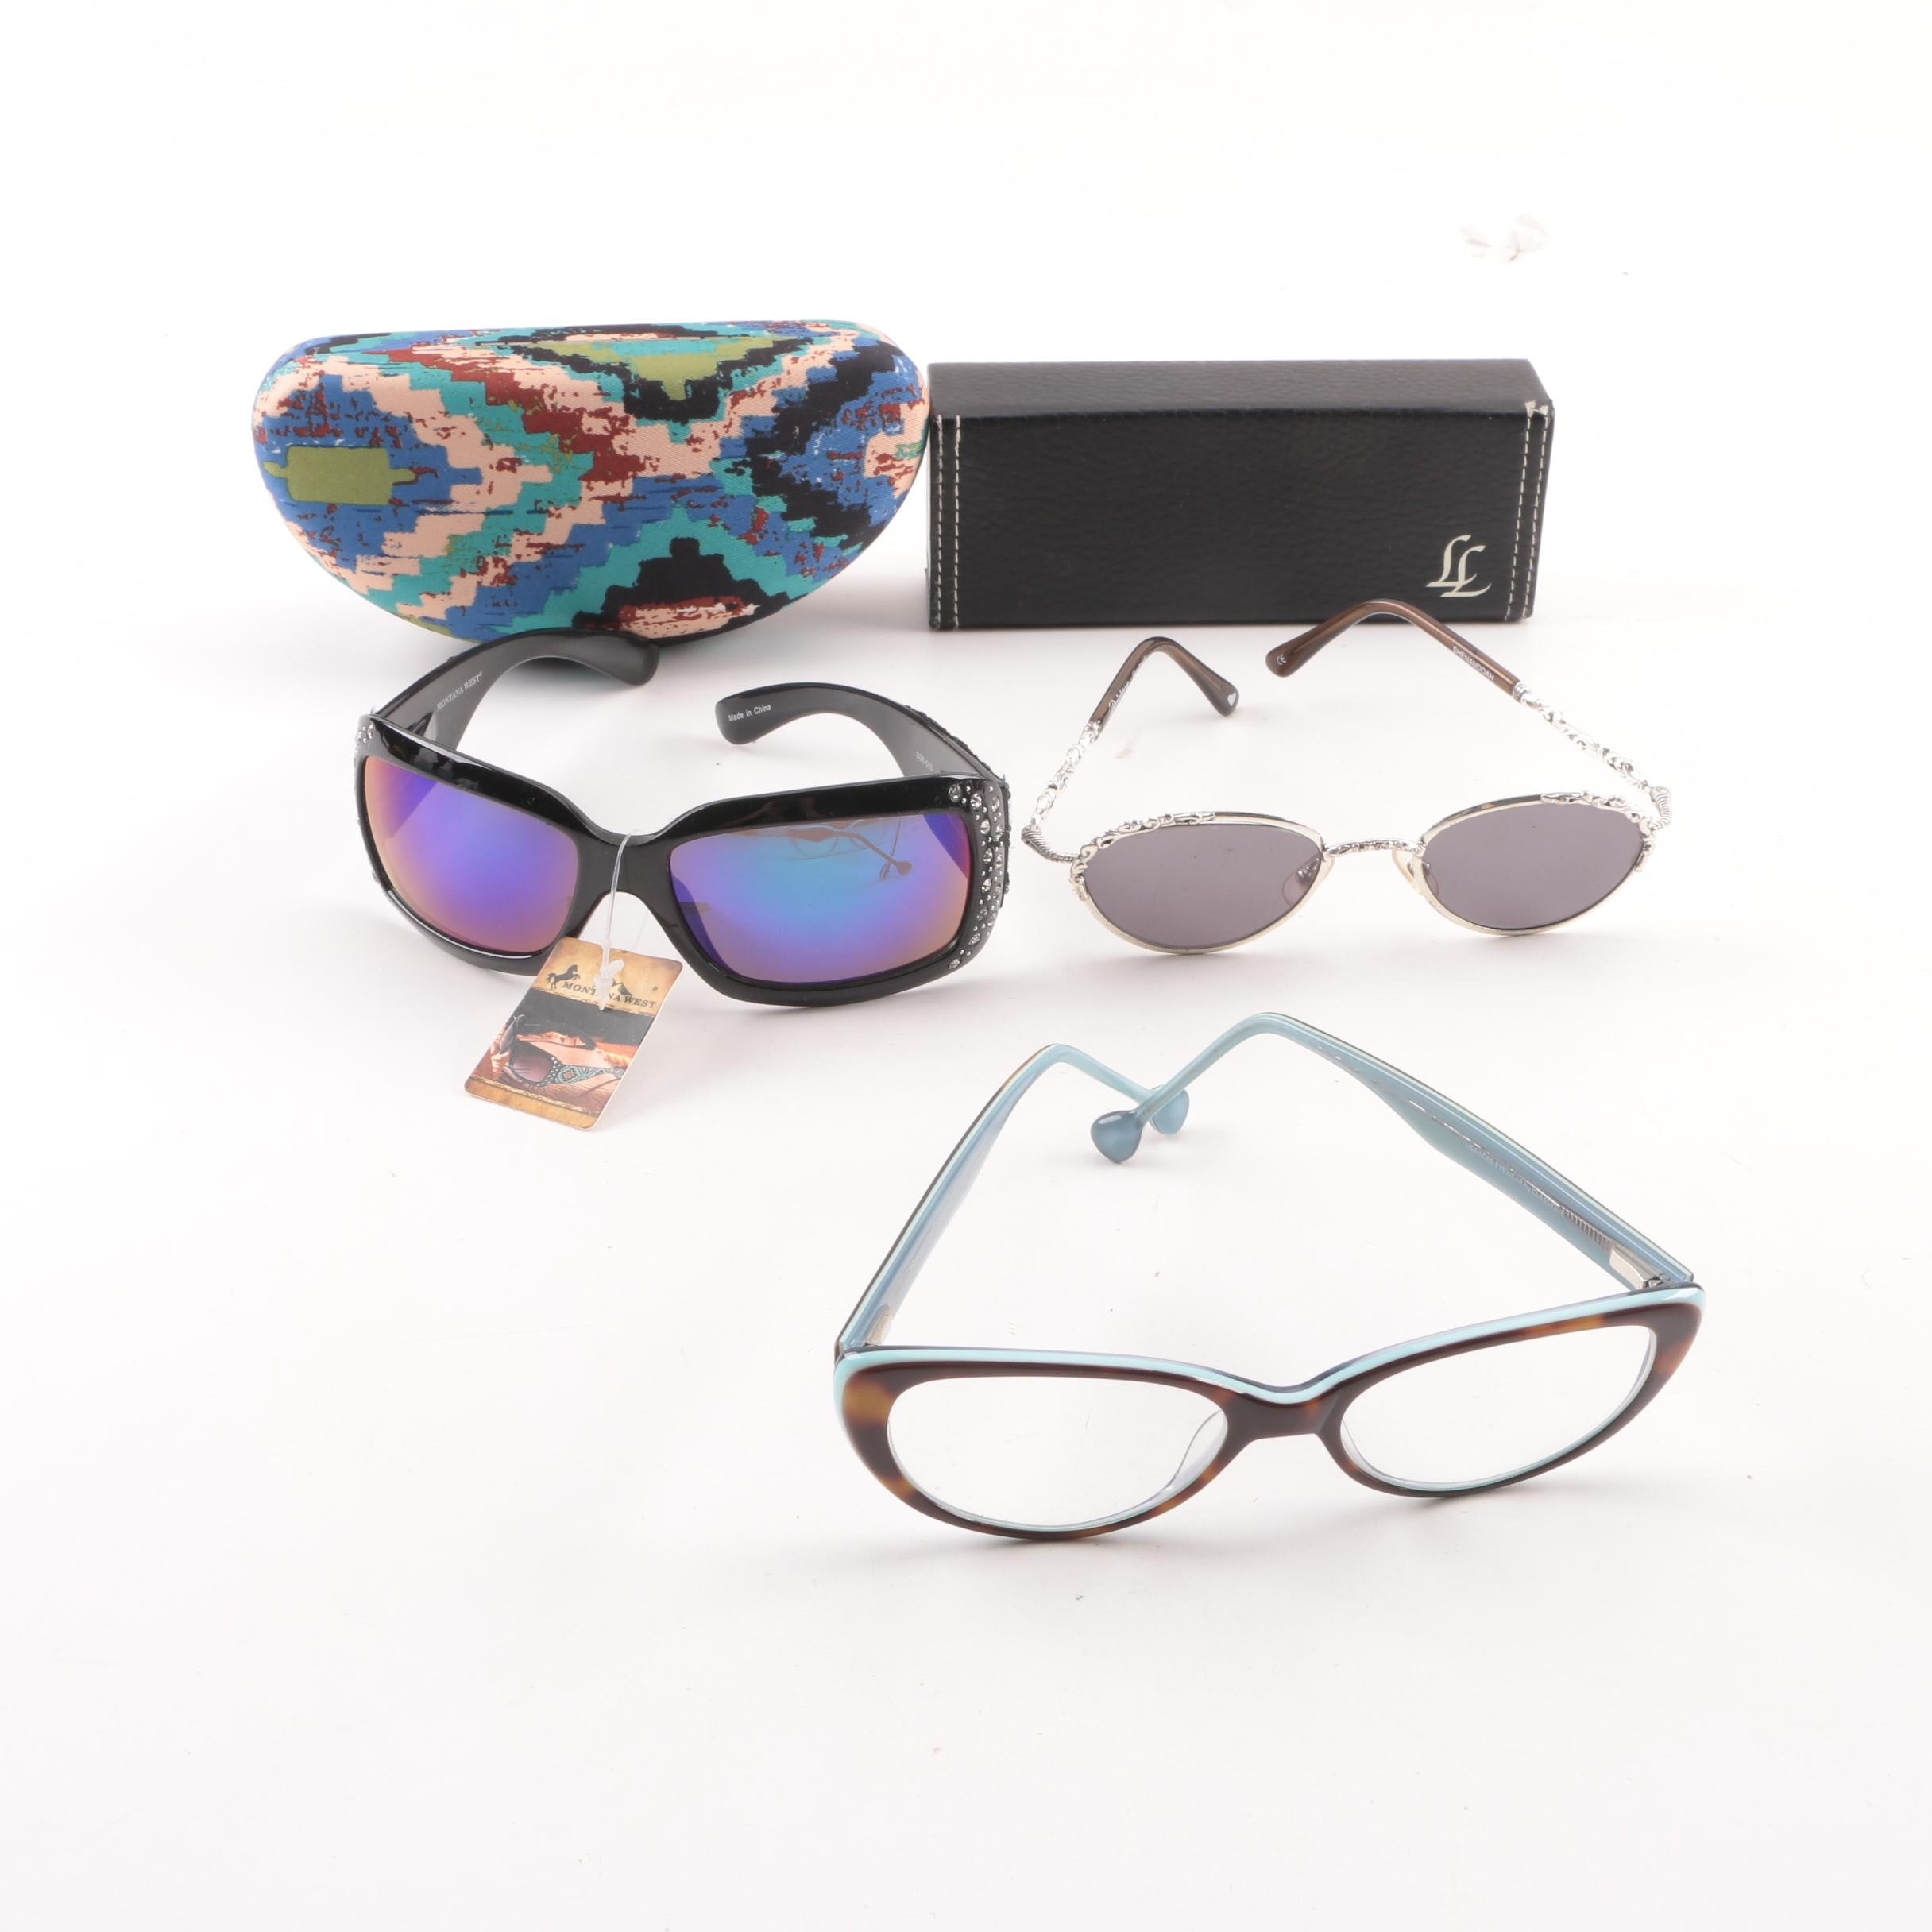 Montana West, Brighton, and Lisa Loeb Sunglasses and Eyeglasses